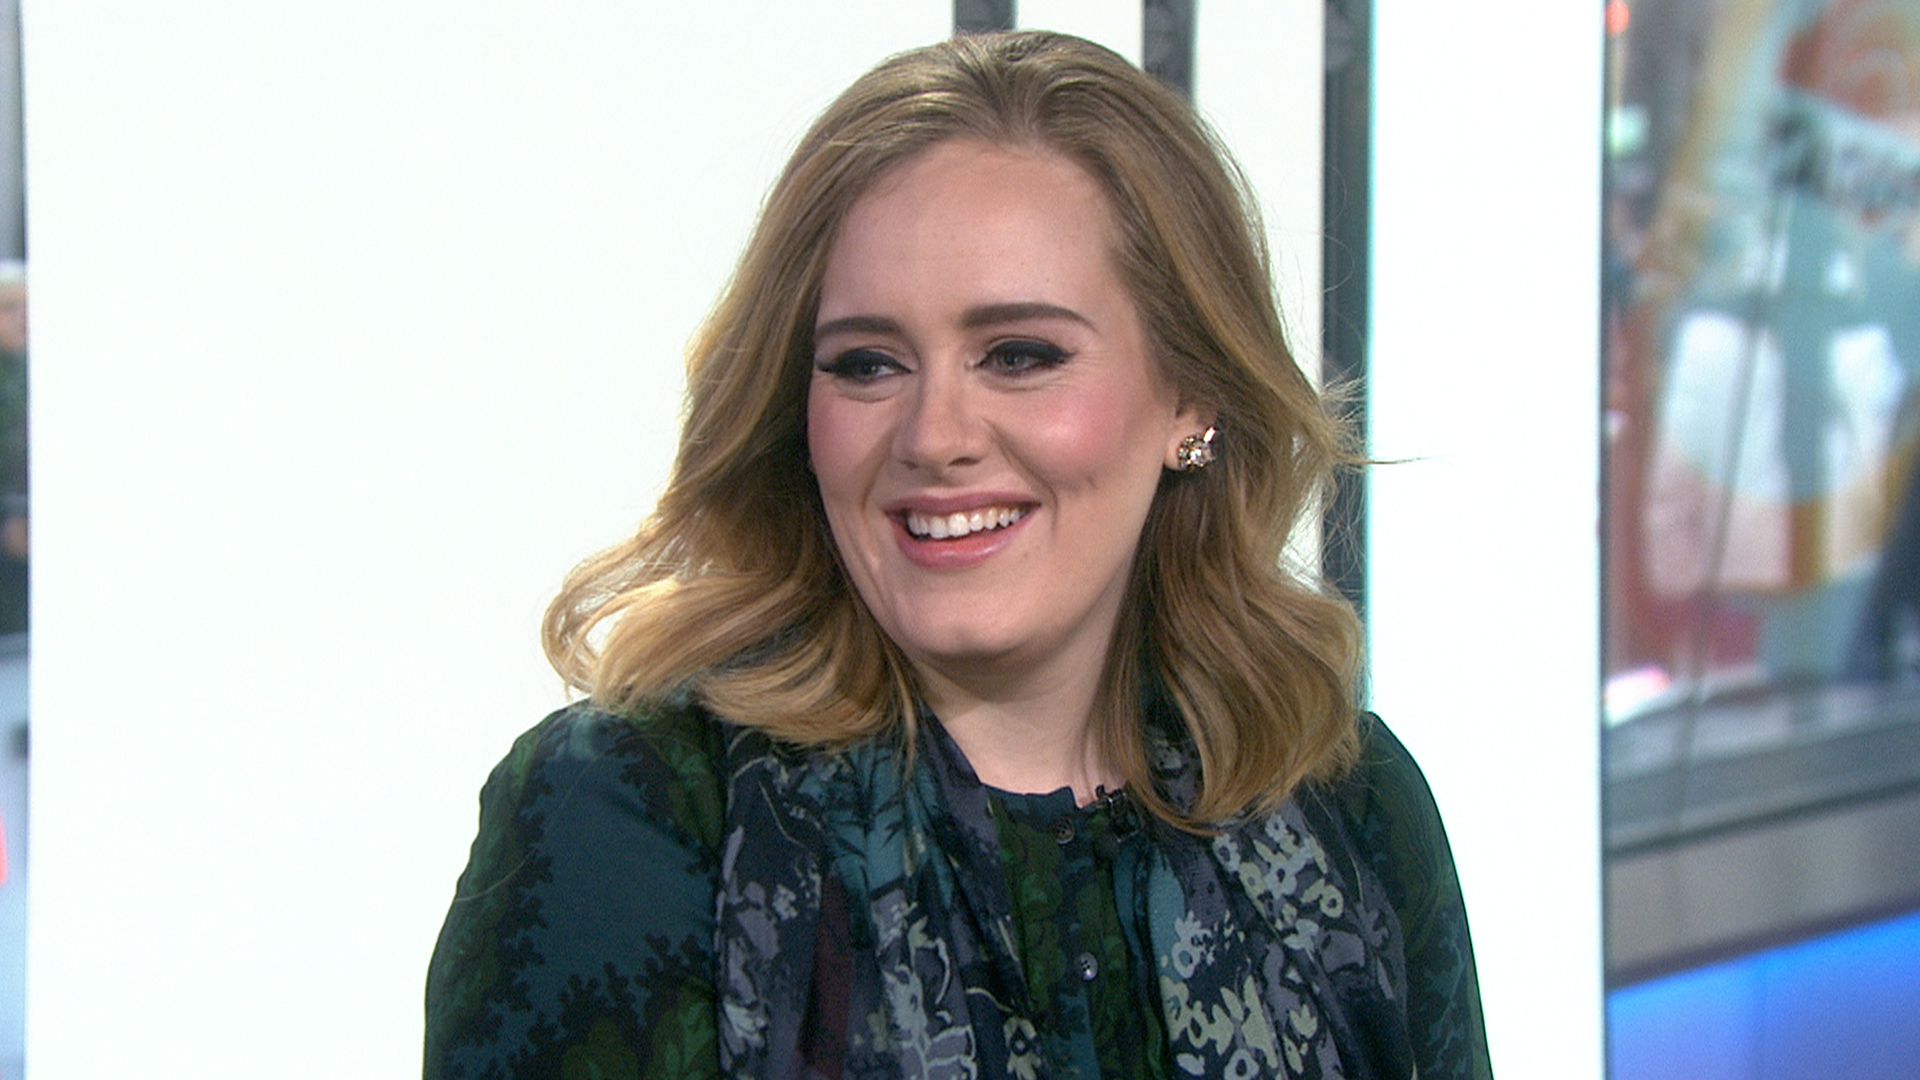 Adele on today sometimes you have to let yourself be sad to move adele on today sometimes you have to let yourself be sad to move forward baditri Image collections